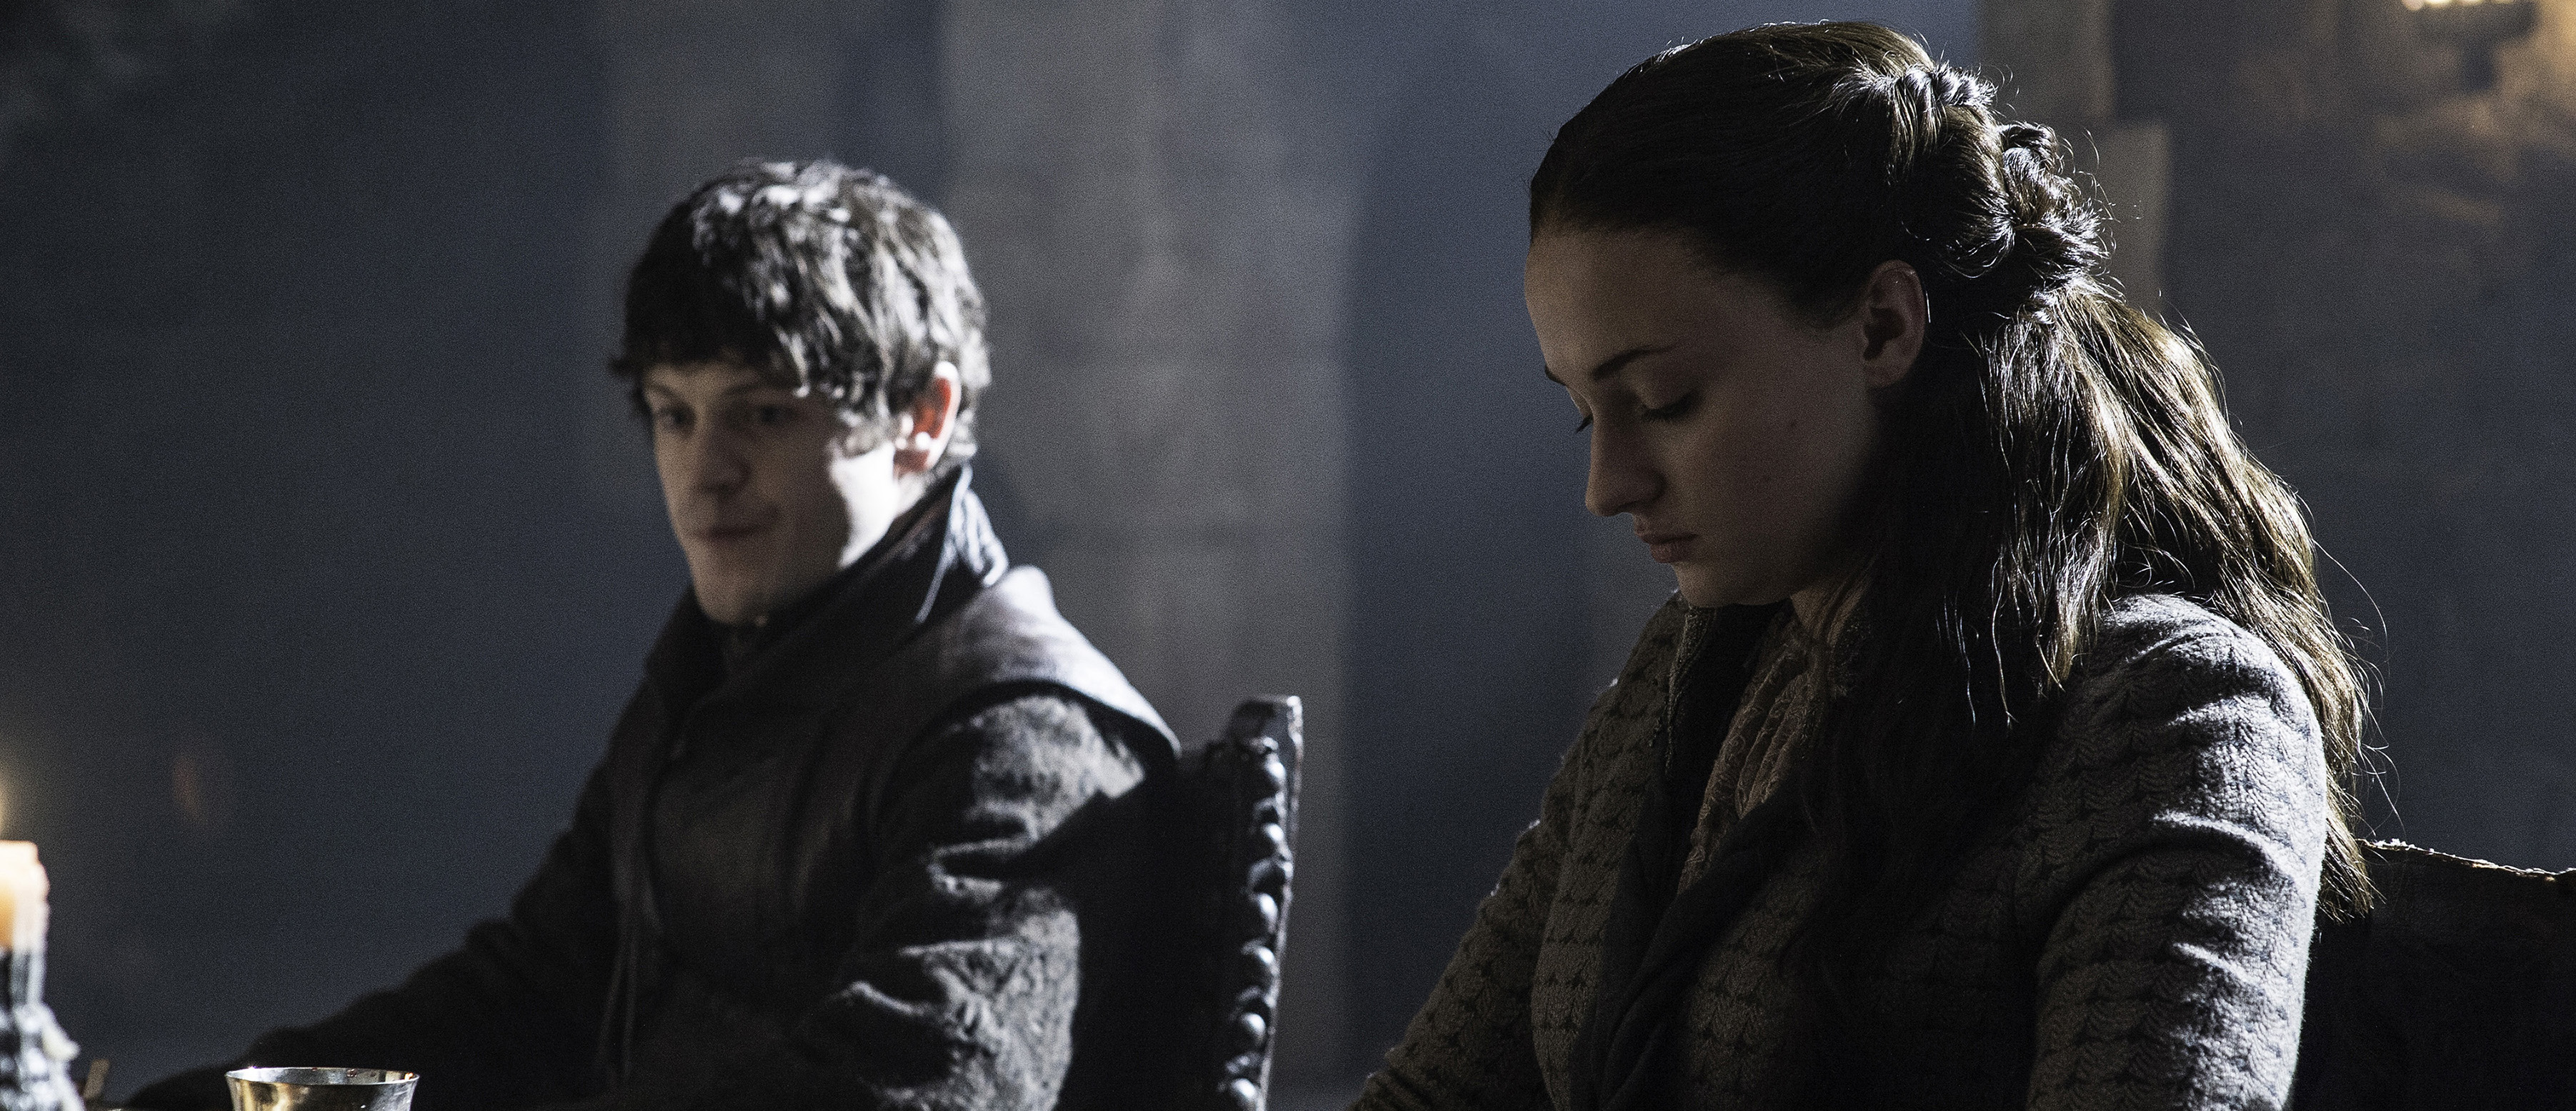 Game of Thrones Season 6 Might Change Approach to Rape